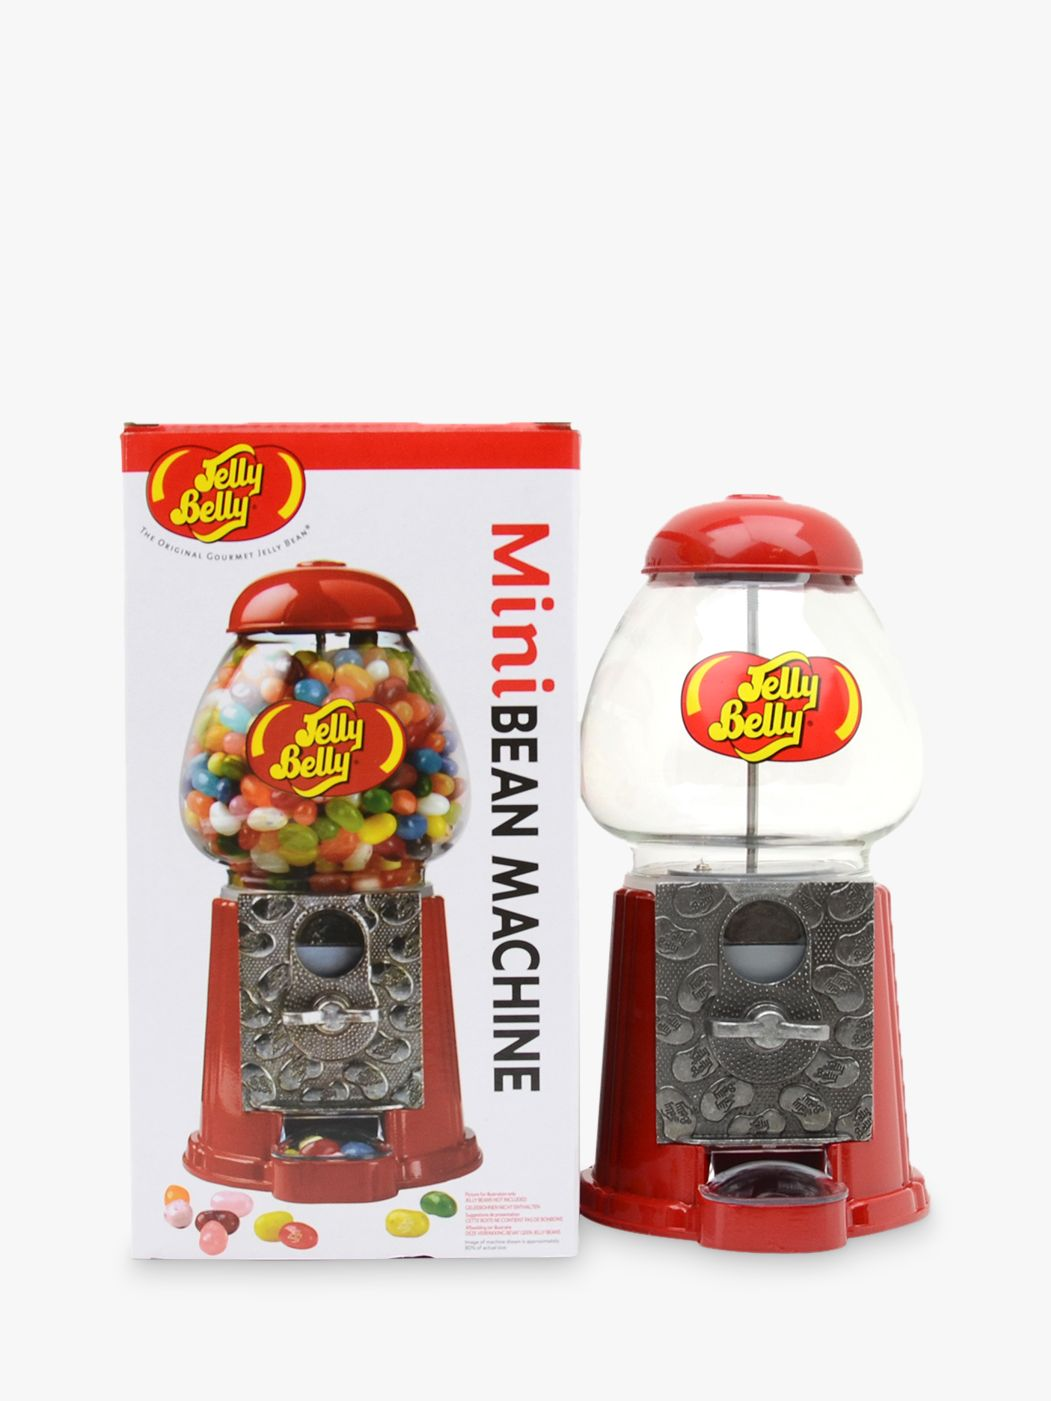 Jelly Belly Jelly Belly Sweet Machine